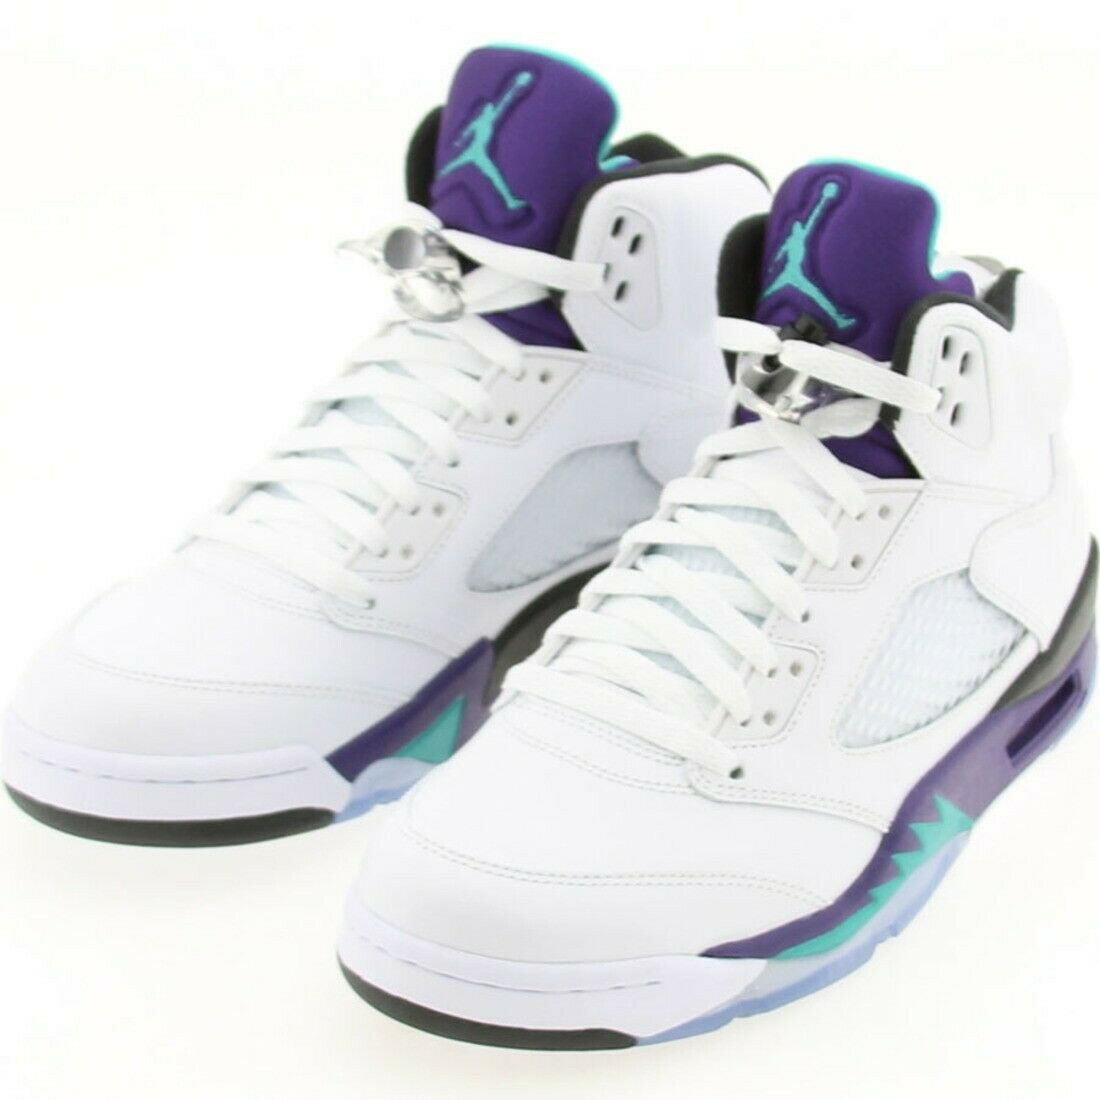 ca6cced9731 US sz AIR JORDAN 5 V RETRO 2013 EMERALD ICE BLK 136027-108 SIZE 8.0 ...